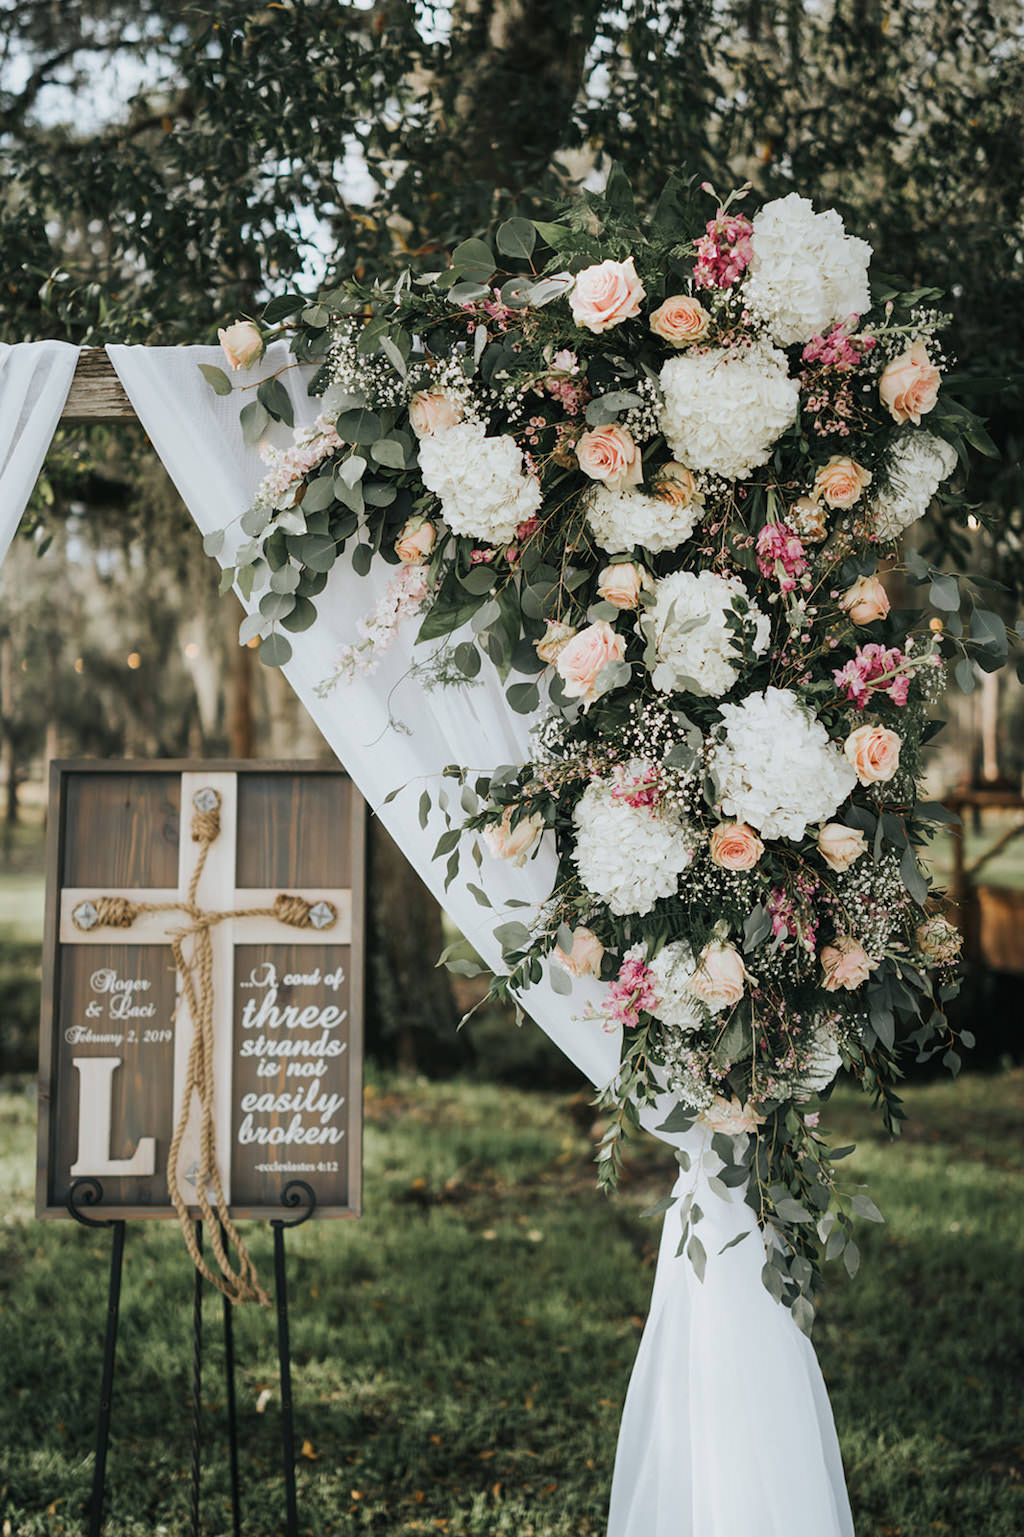 INSTAGRAM Rustic Chic Wedding Ceremony Decor, Arch with White Linen Draping, White Hydrangeas, Blush Pink Roses and Greenery Floral Arrangement   Tampa Wedding Planner Kelly Kennedy Weddings and Events